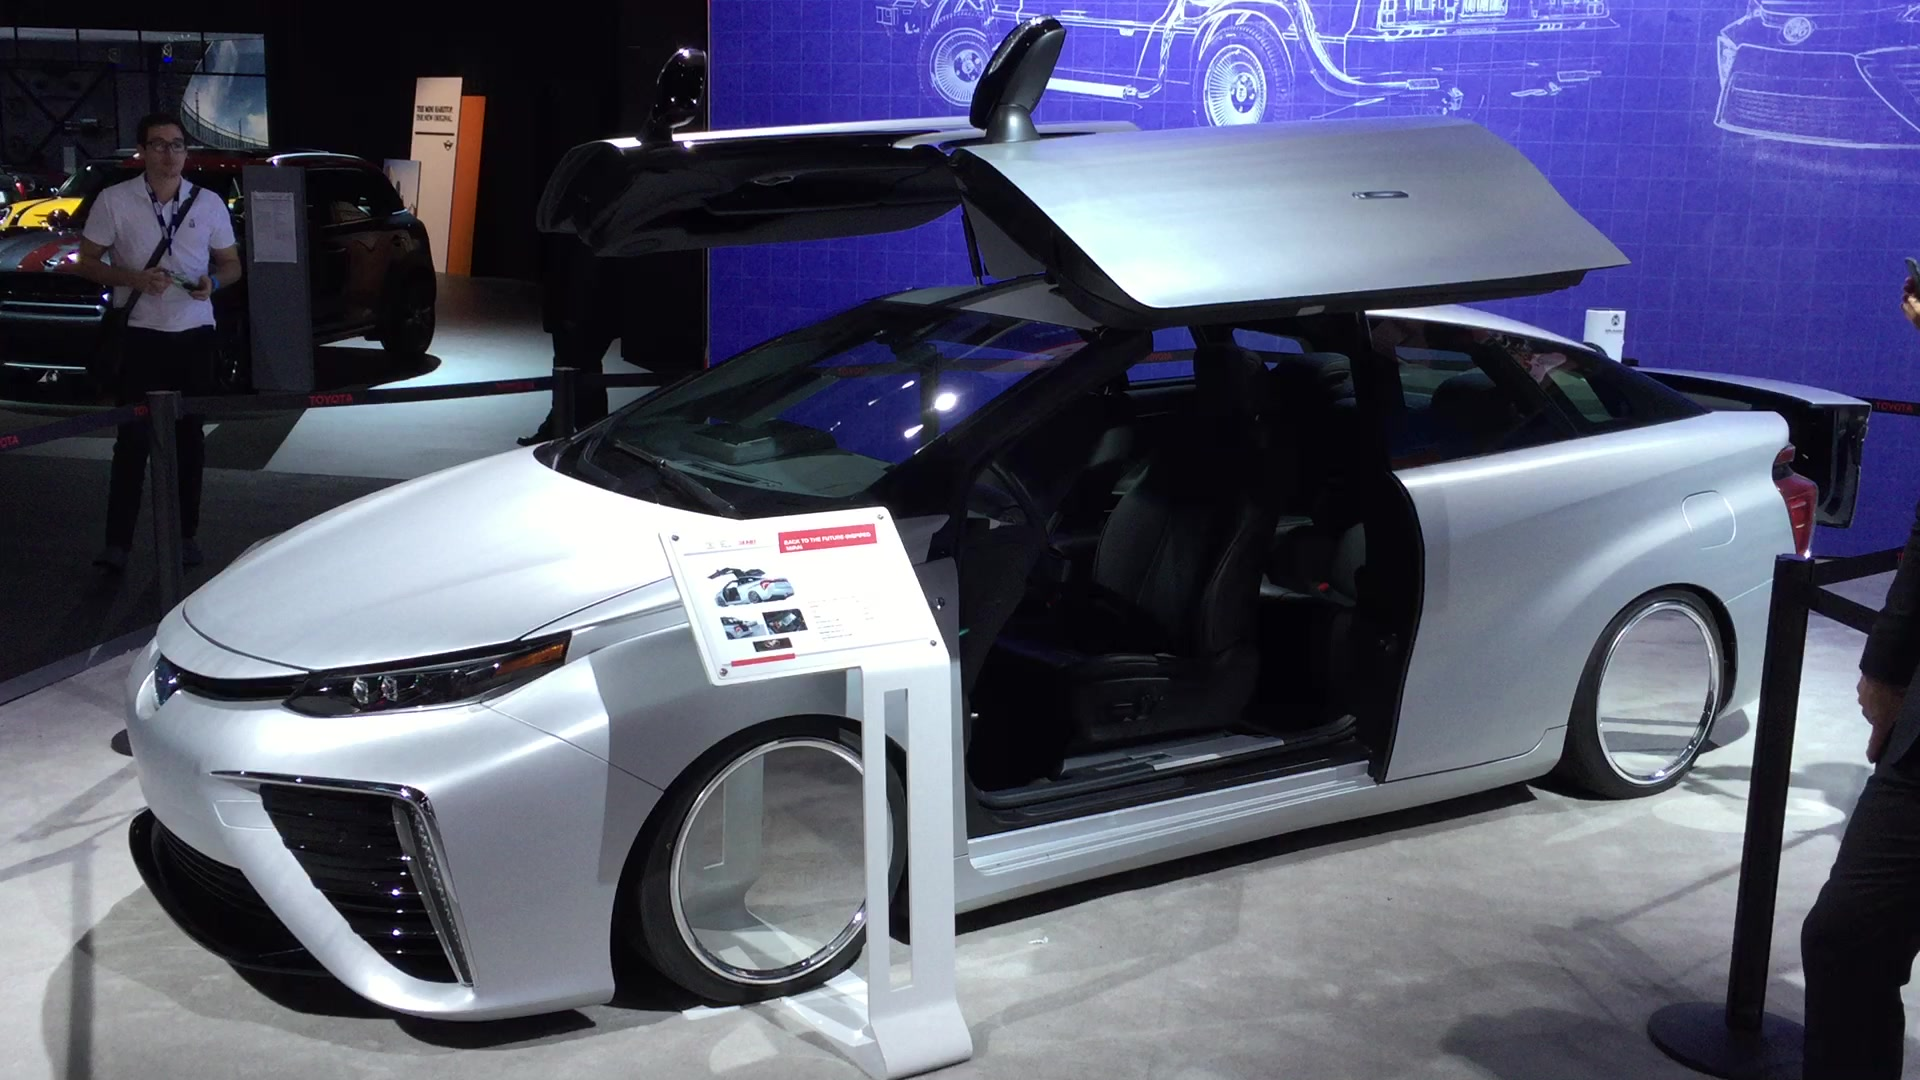 SEMA Toyota Mirai WIth Gull-Wing Doors | LA Auto Show | Autoblog Short Cuts